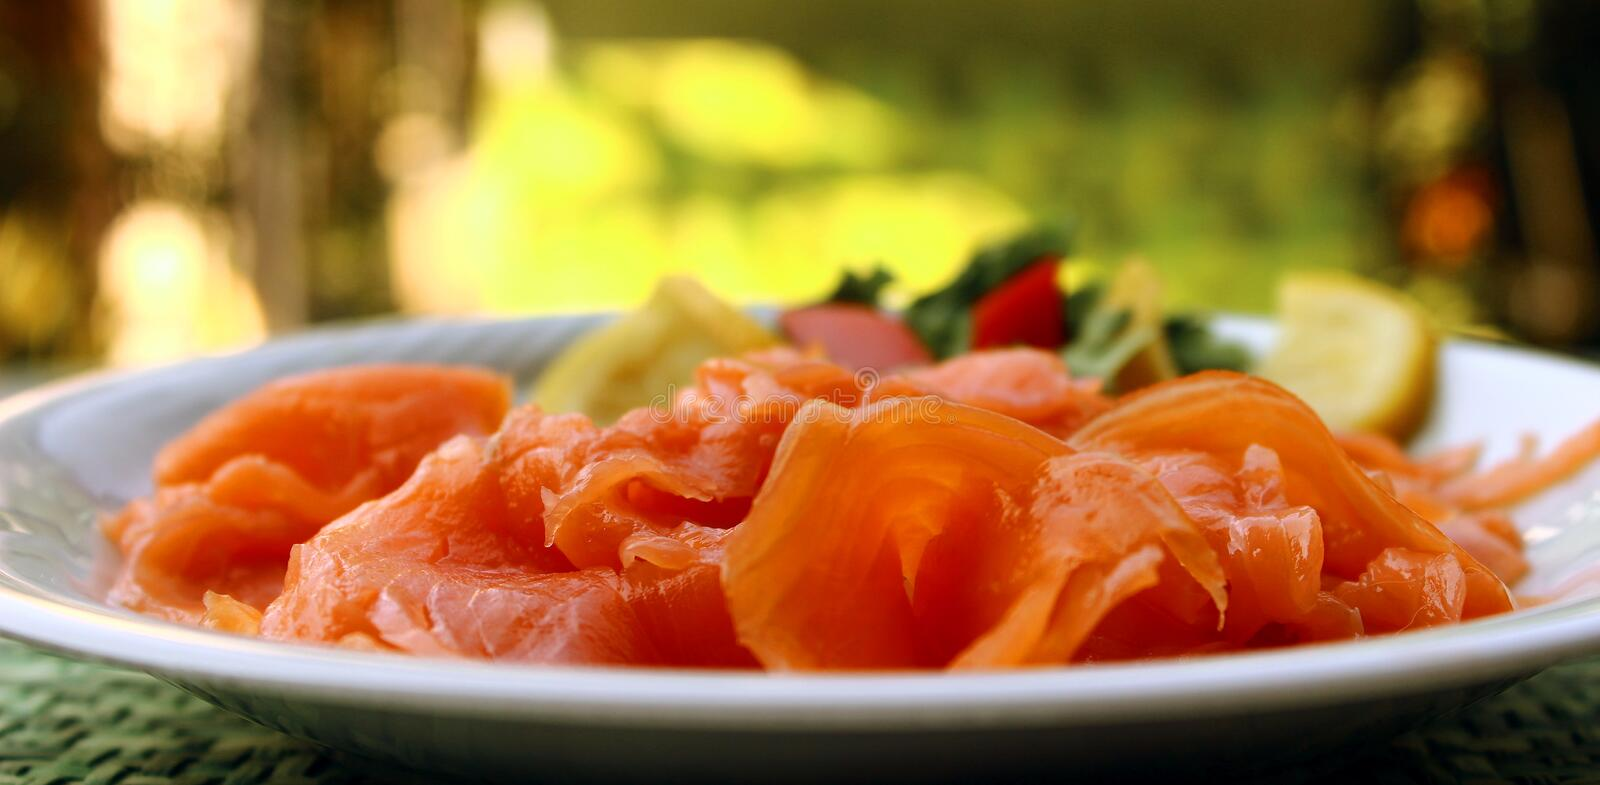 Bagel With Smoked Salmon And Cream Cheese Stock Image ...